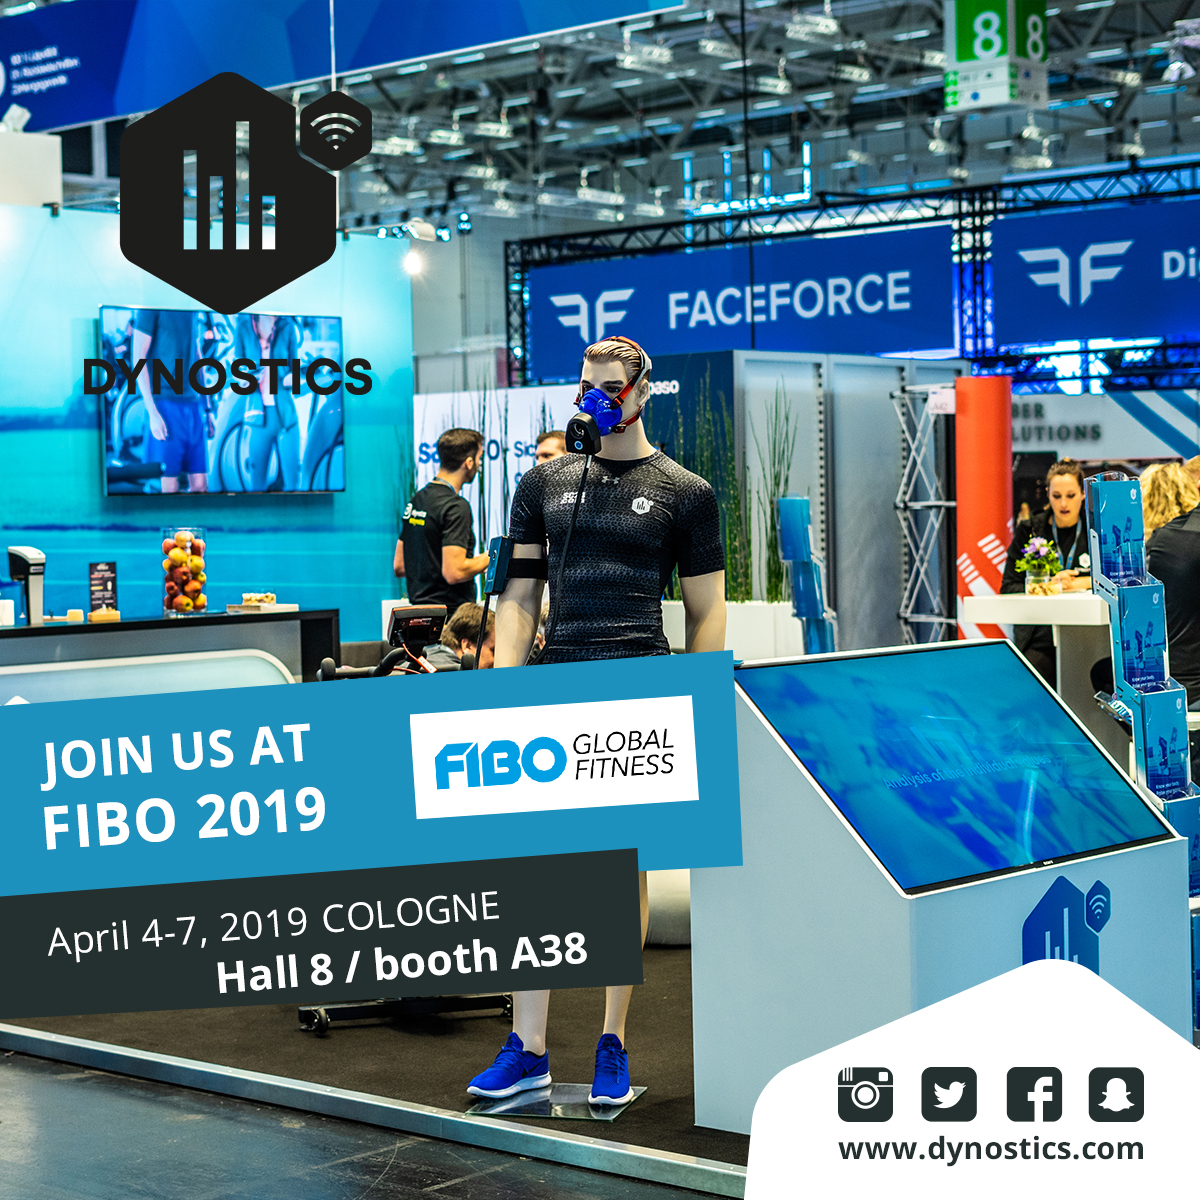 DYNOSTICS at the FIBO 2019 in Cologne from April 4-7 - Hall 8/A38